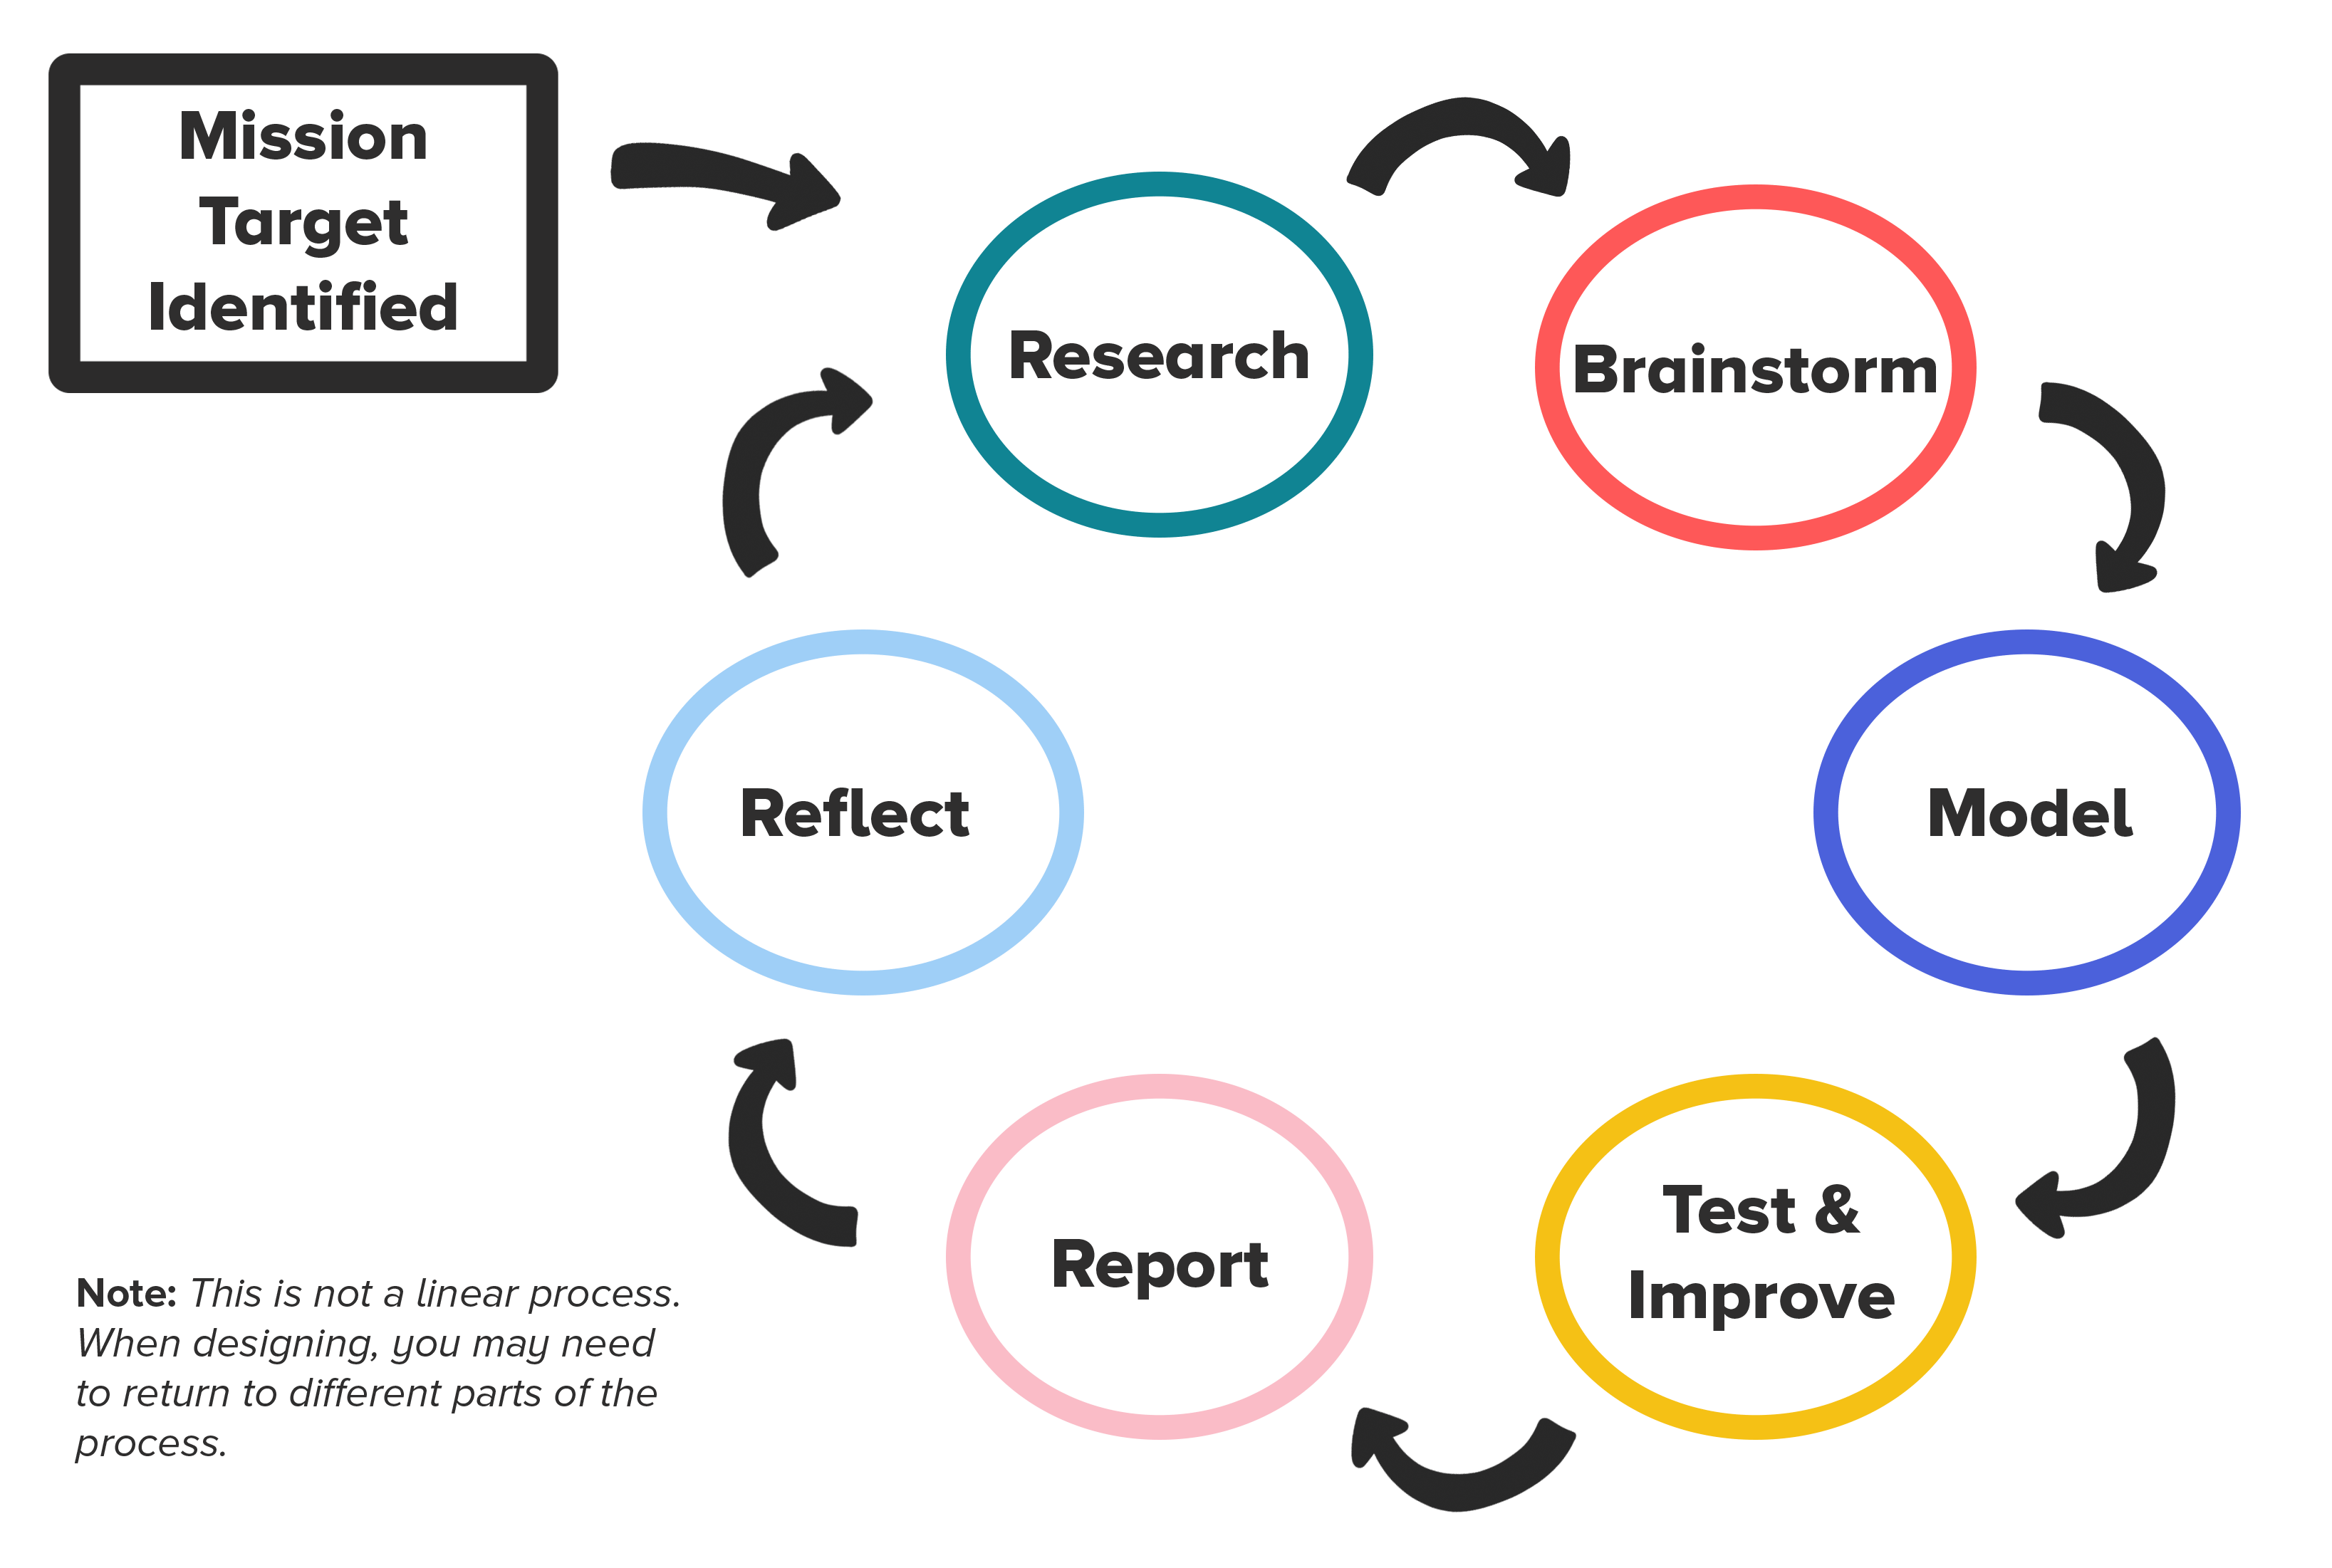 Cycle diagram showing Mission Identified, then a circle with Research (arrow) Brainstorm (arrow) Model (arrow) Test & Prototype (arrow) Report (arrow) Reflect (arrow back to Brainstorm)